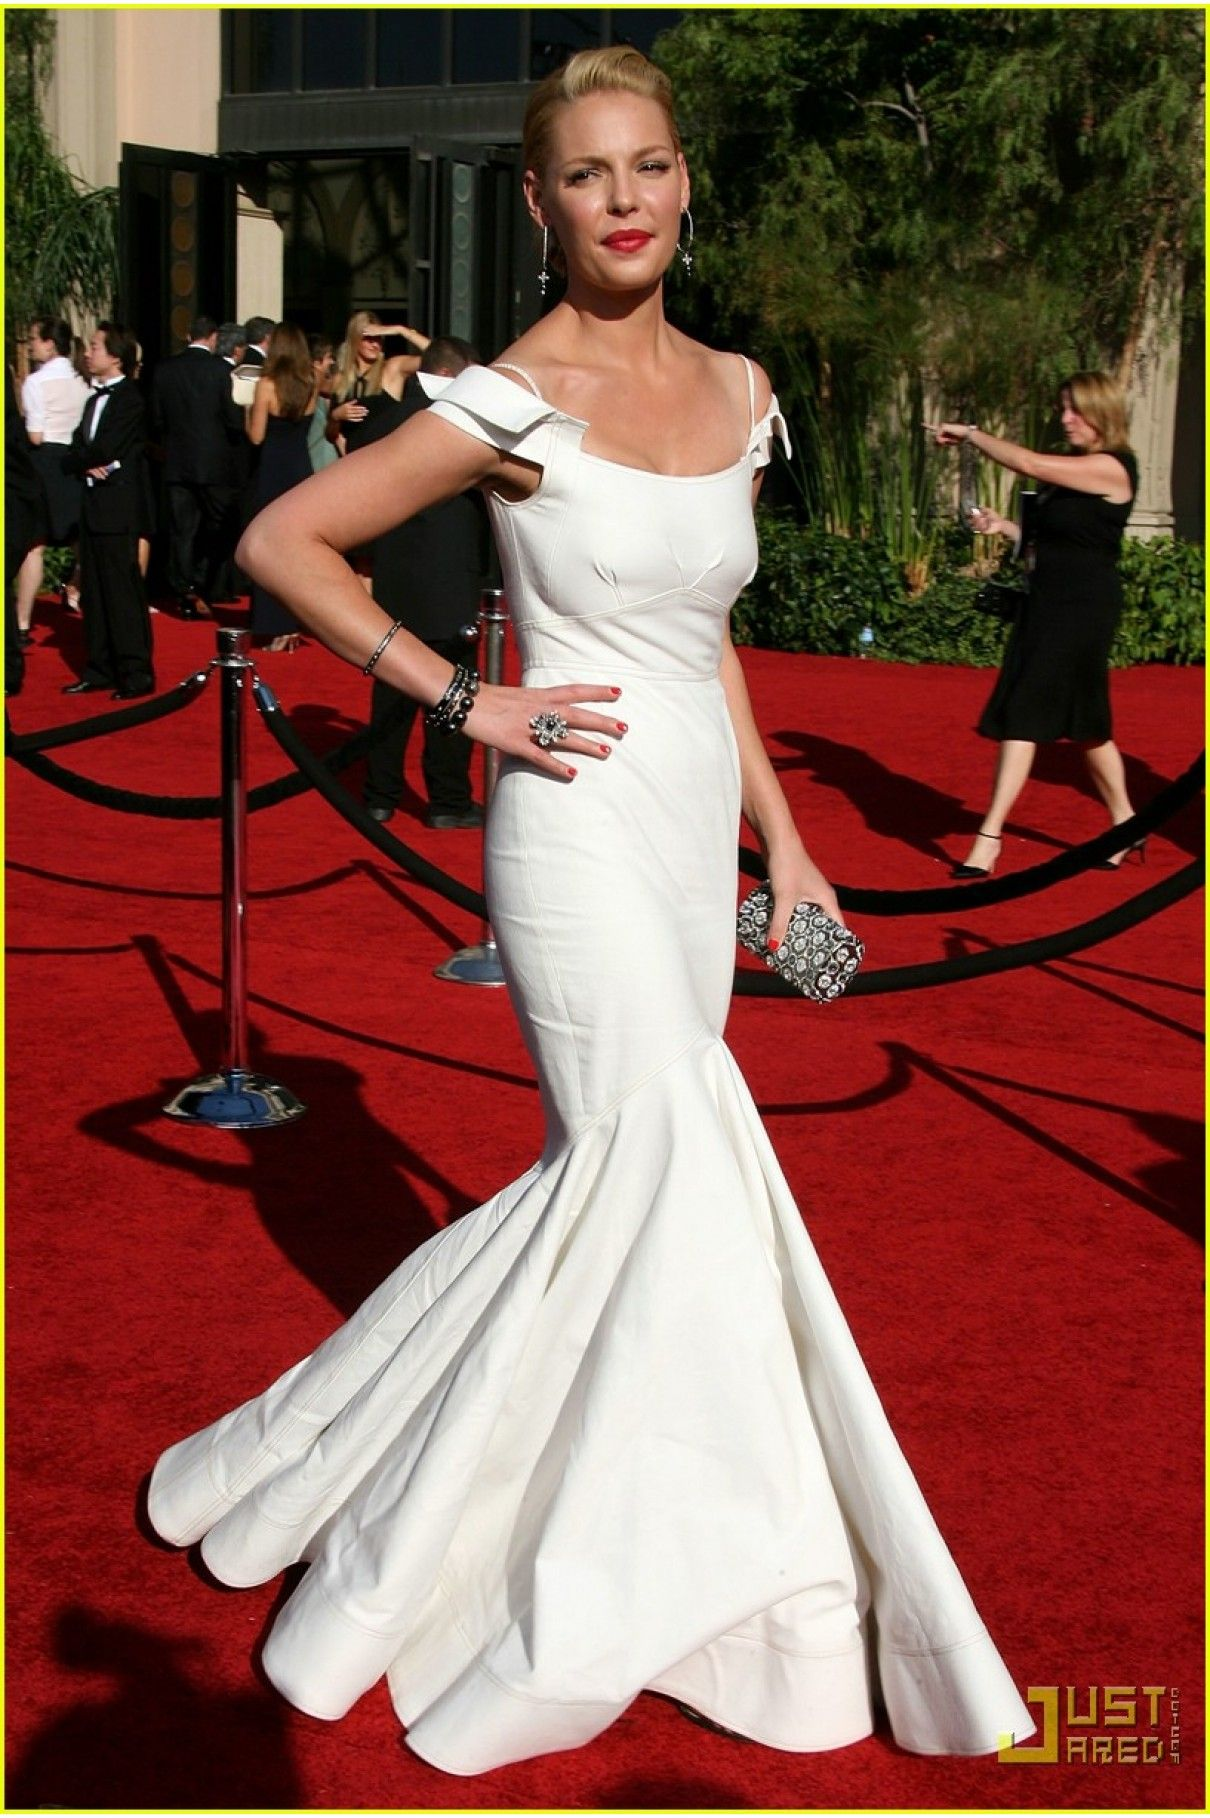 Katherine Heigl 2007 The 59th Annual Emmy Awards White Mermaid Prom Gown Celebrity Dresses Dresses Emmy Awards Dresses [ 1818 x 1210 Pixel ]